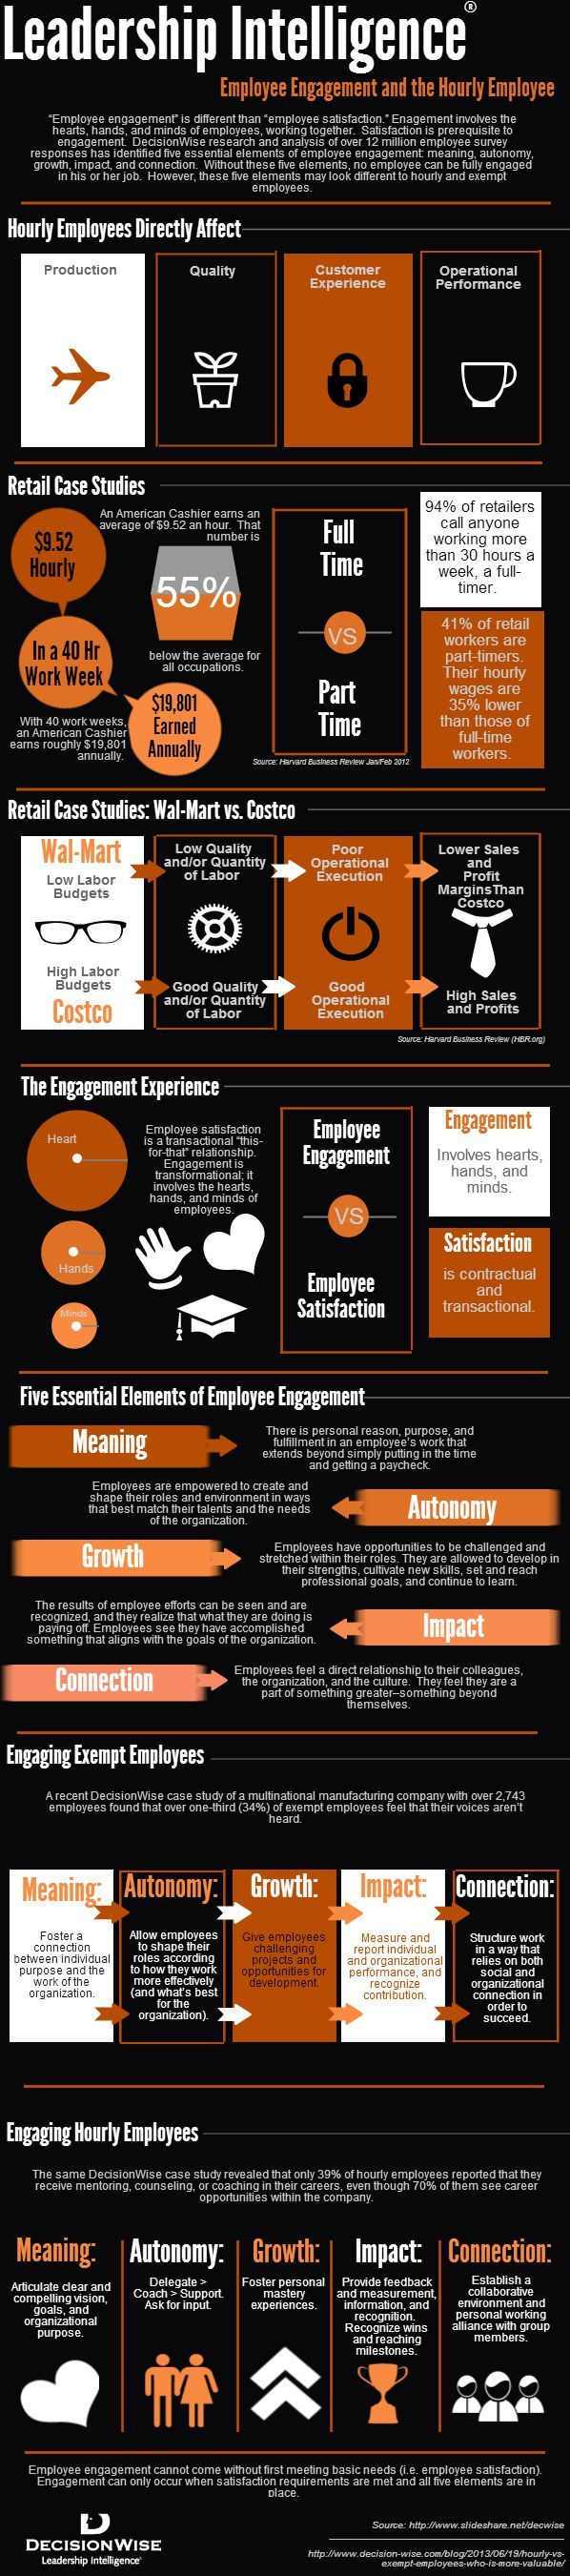 This infographic covers a topic many organizations and HR leaders are pressed to master: how to engage your employees. Whether your employees are paid hourly or exempt, this graphic shares how to engage  them to create a more productive workplace and company culture.: